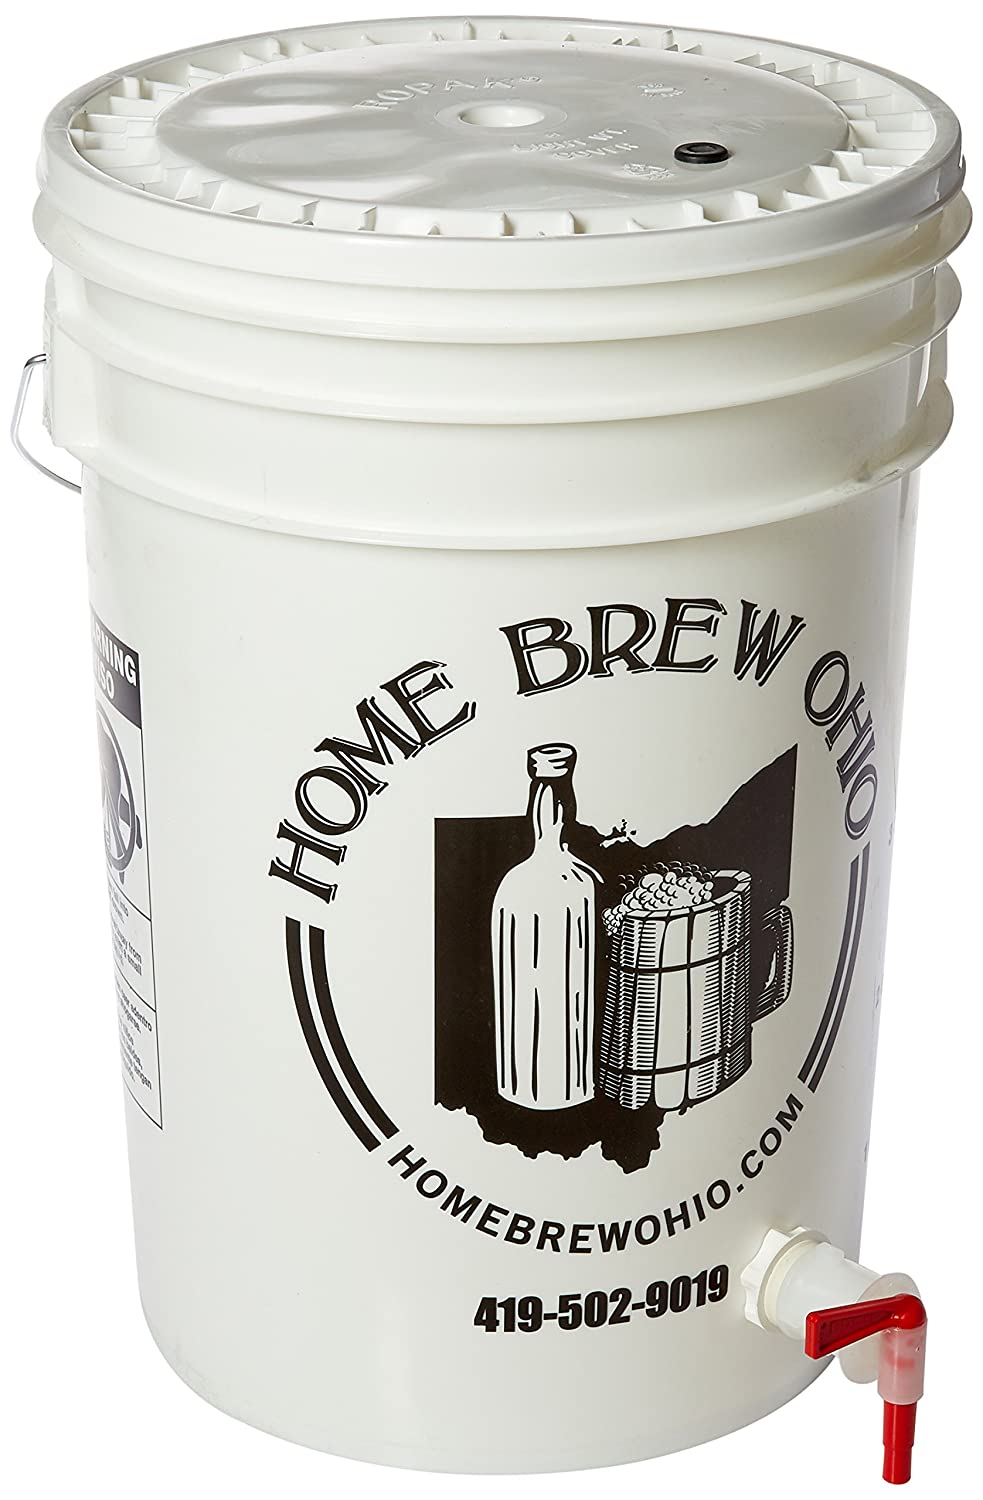 6.5 Gallon Bottling Bucket with Lid and Spigot for Bottling Beer Learn To Brew JW-B24X-JGSQ